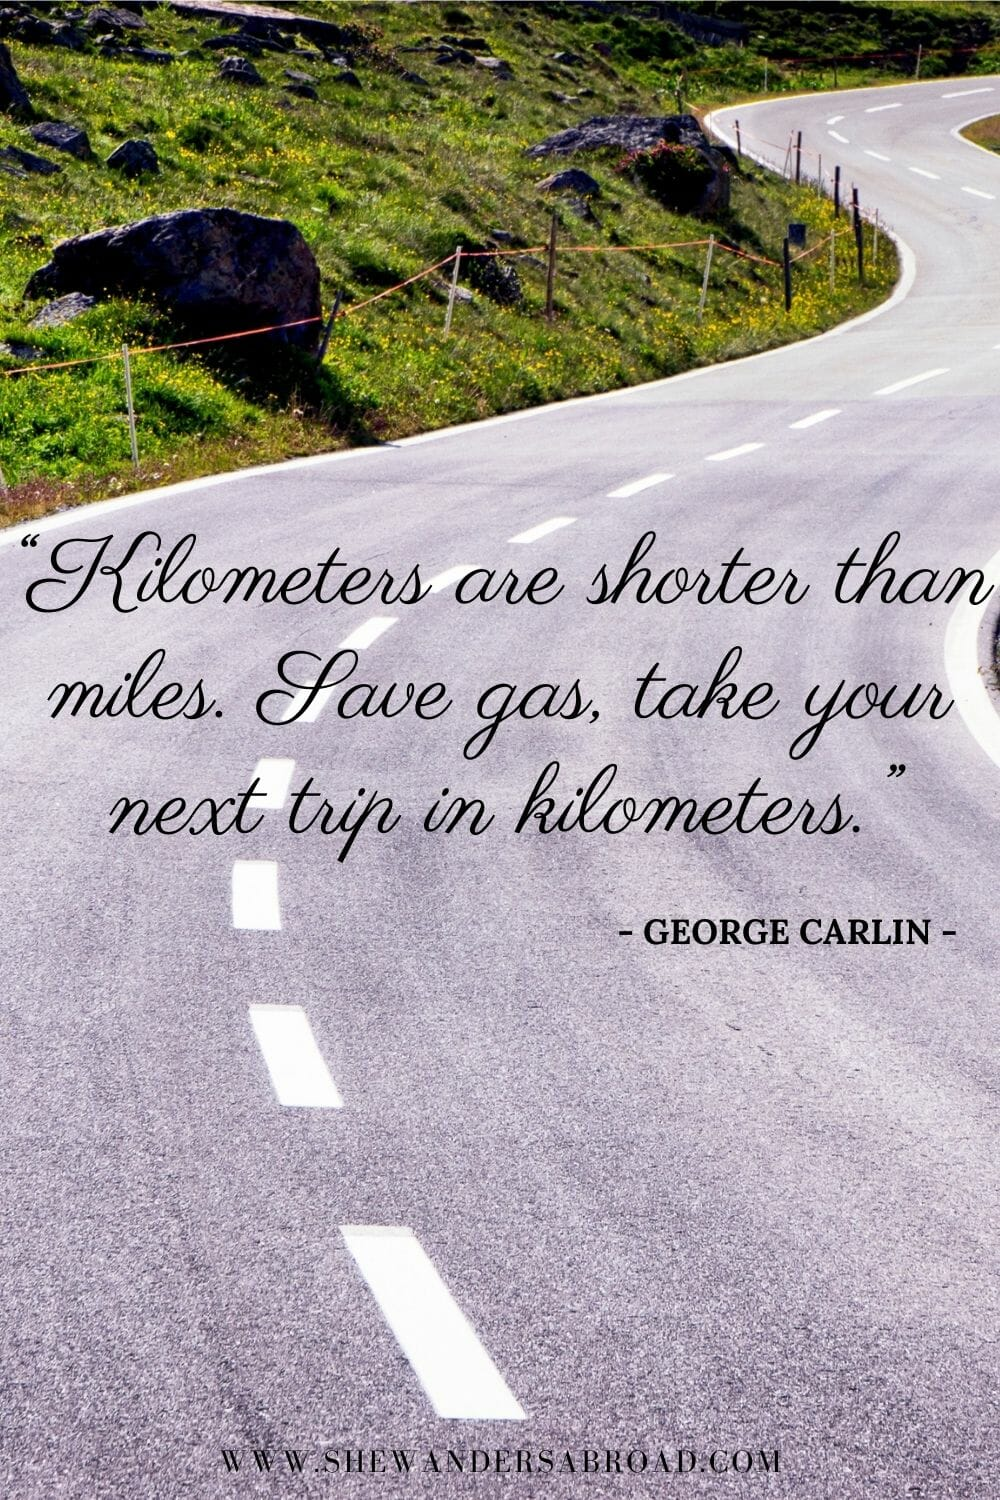 Funny quotes about road trips